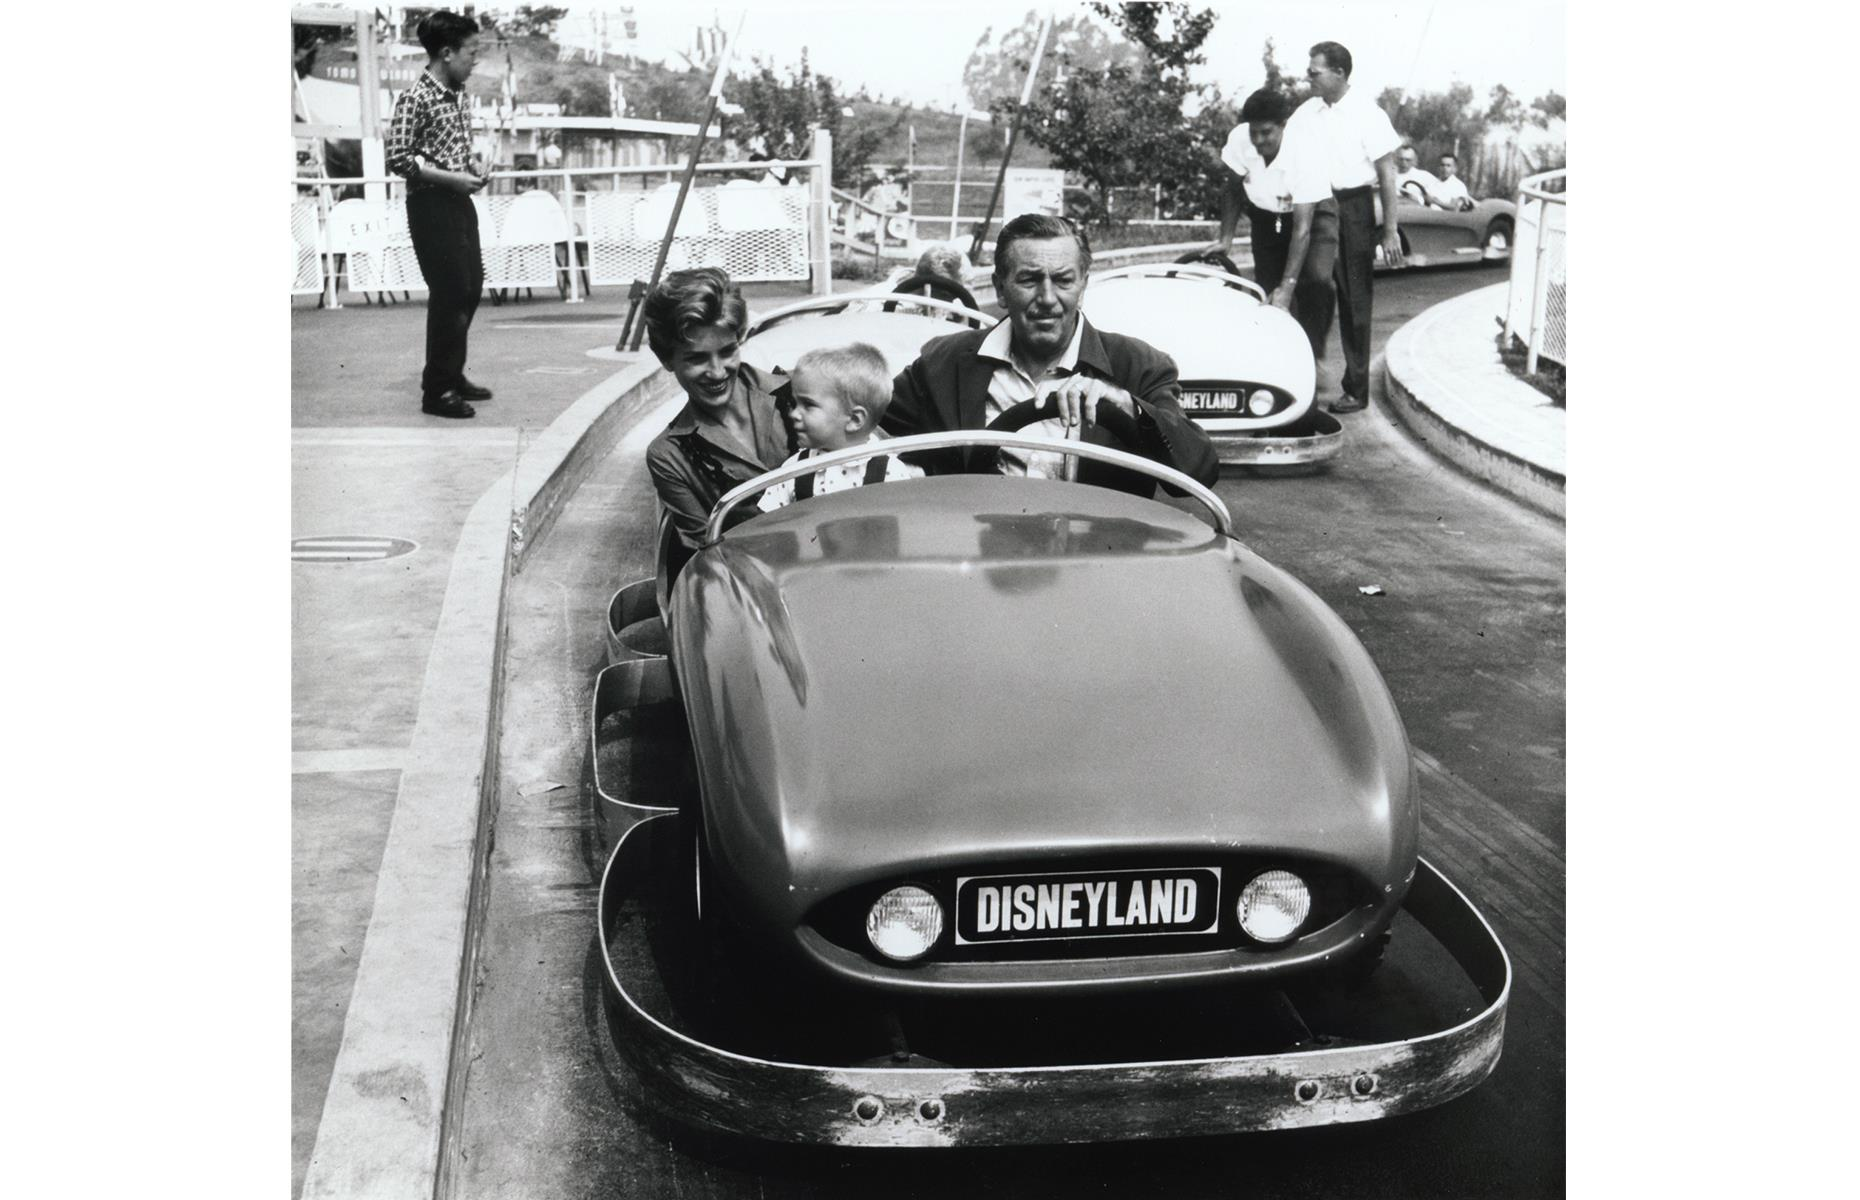 Slide 13 of 38: Another vintage Disney family snap, this one shows the park creator with his grandson and his daughter too. They're whizzing around on Autopia, a miniature speedway that still exists today. It was one of the park's opening attractions, debuting in futuristic Tomorrowland, where it remains.